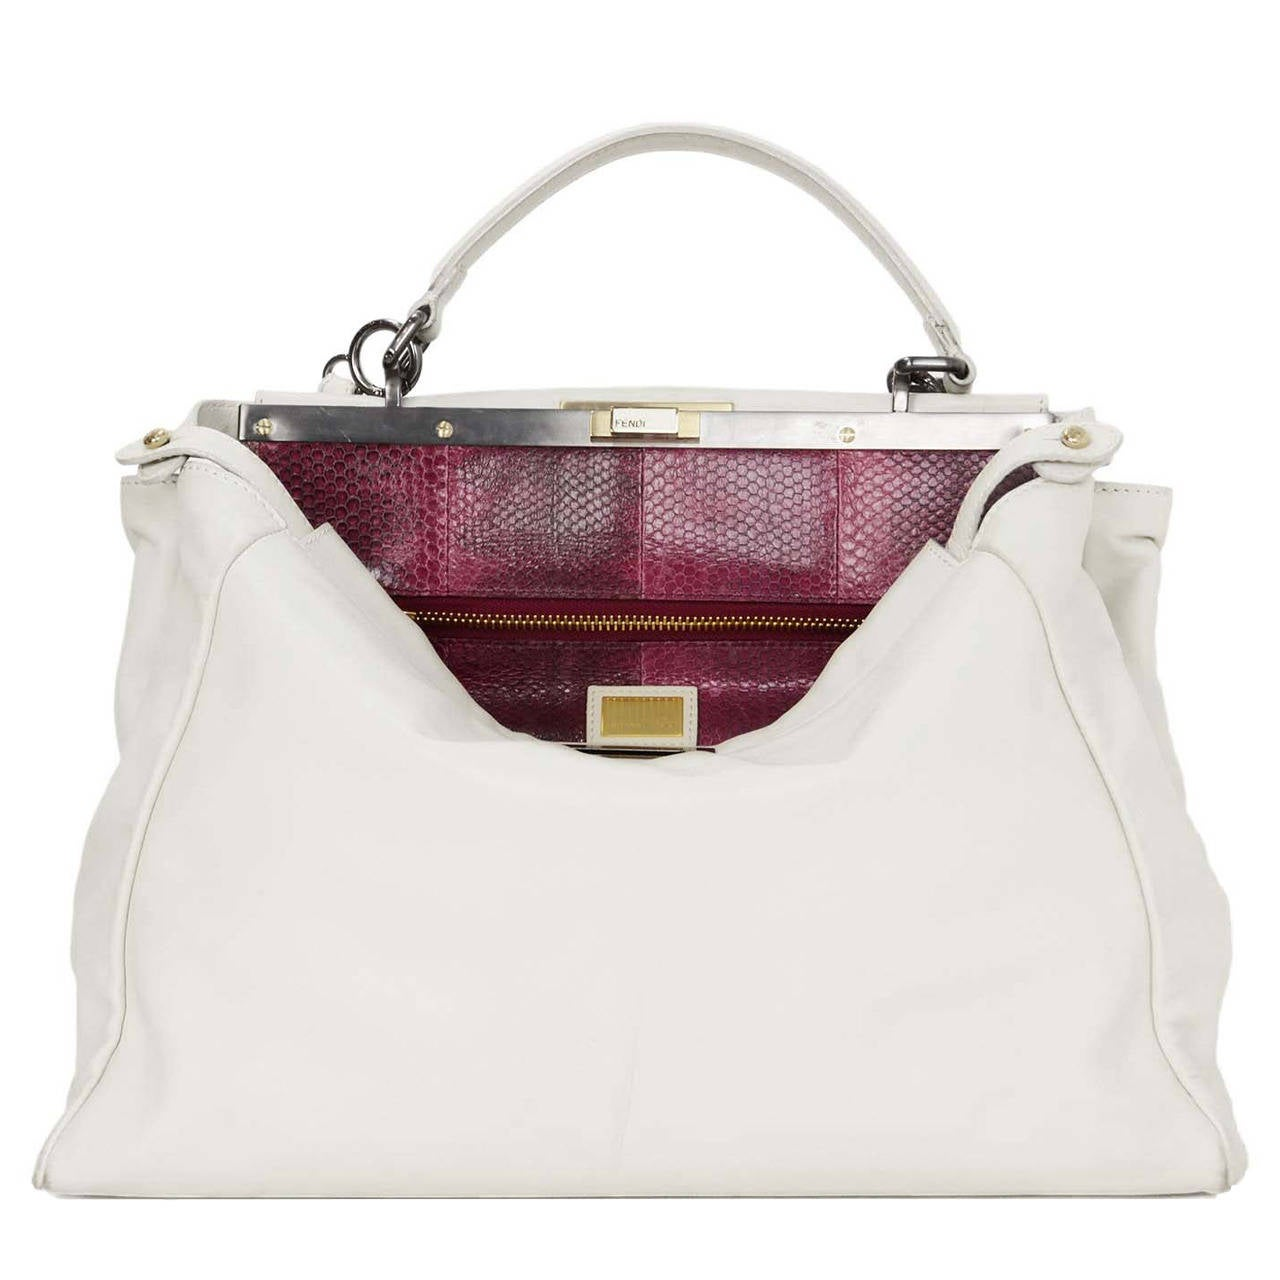 1556eb898ff Fendi White Leather Large Peekaboo Bag w Pink Python Lining rt. $5,620 For  Sale